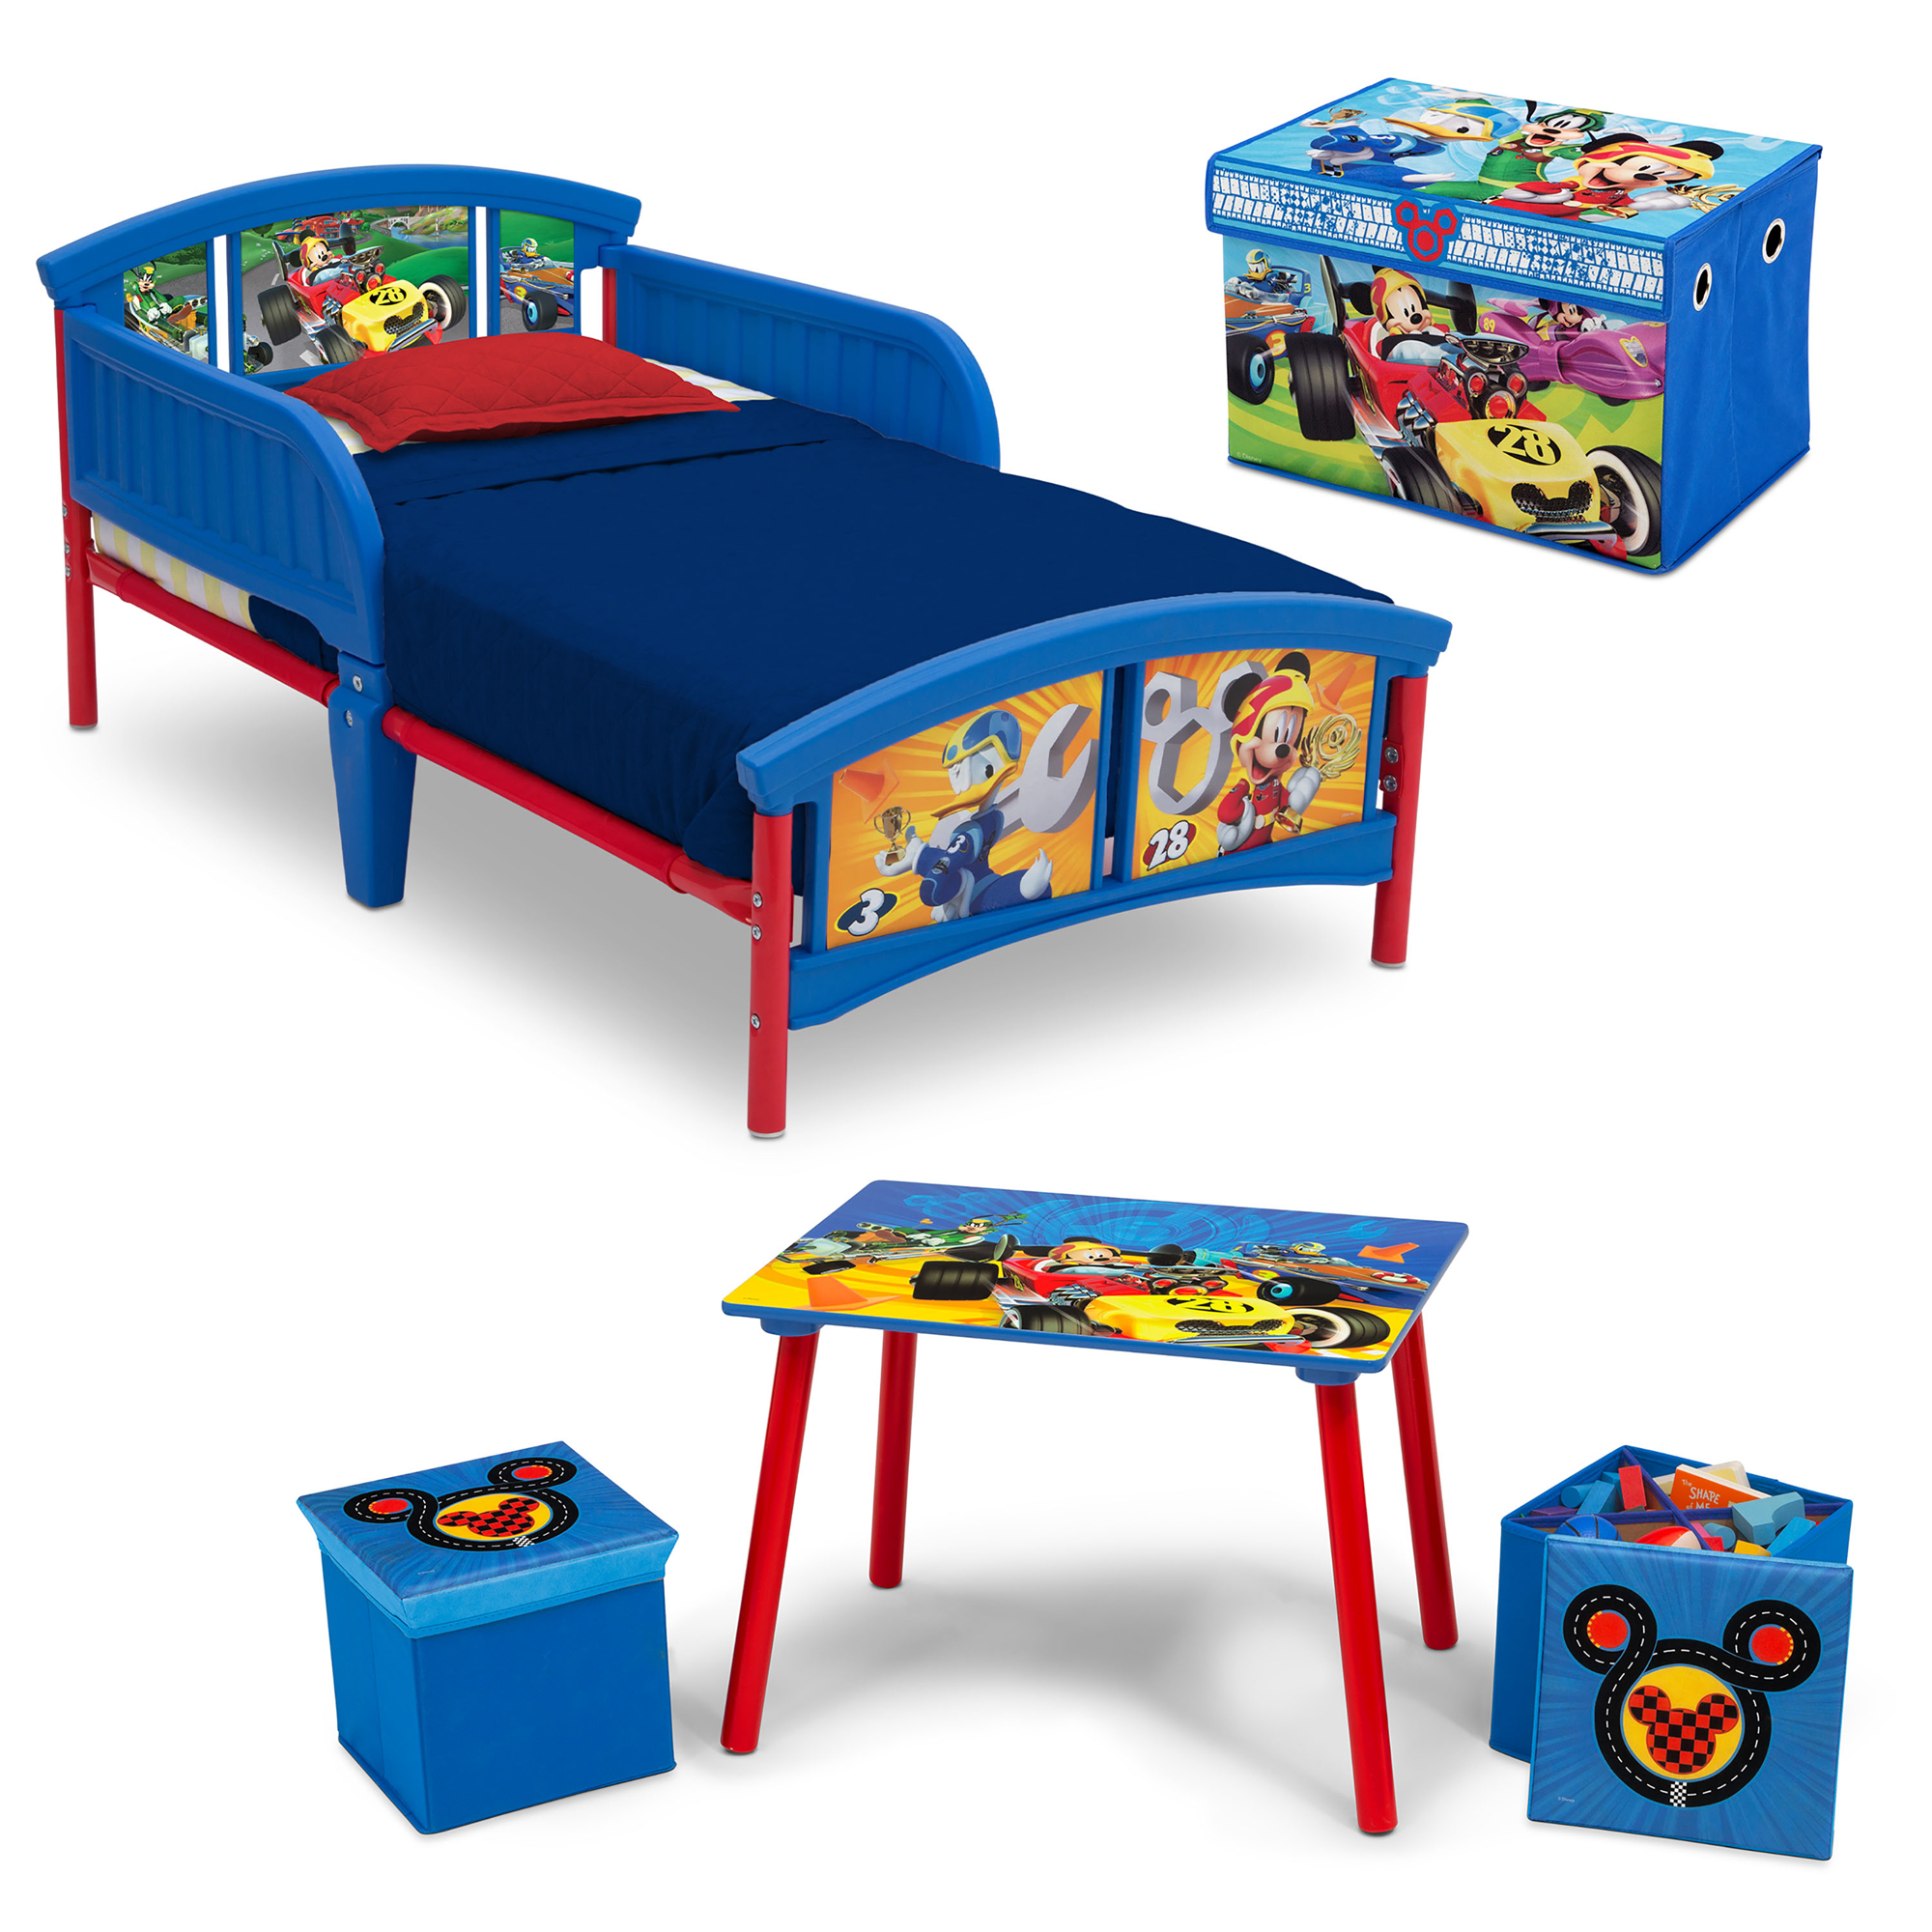 Disney Mickey Mouse 4-Piece Toddler Bed Bedroom Set with BONUS Fabric Toy Box by Delta Children